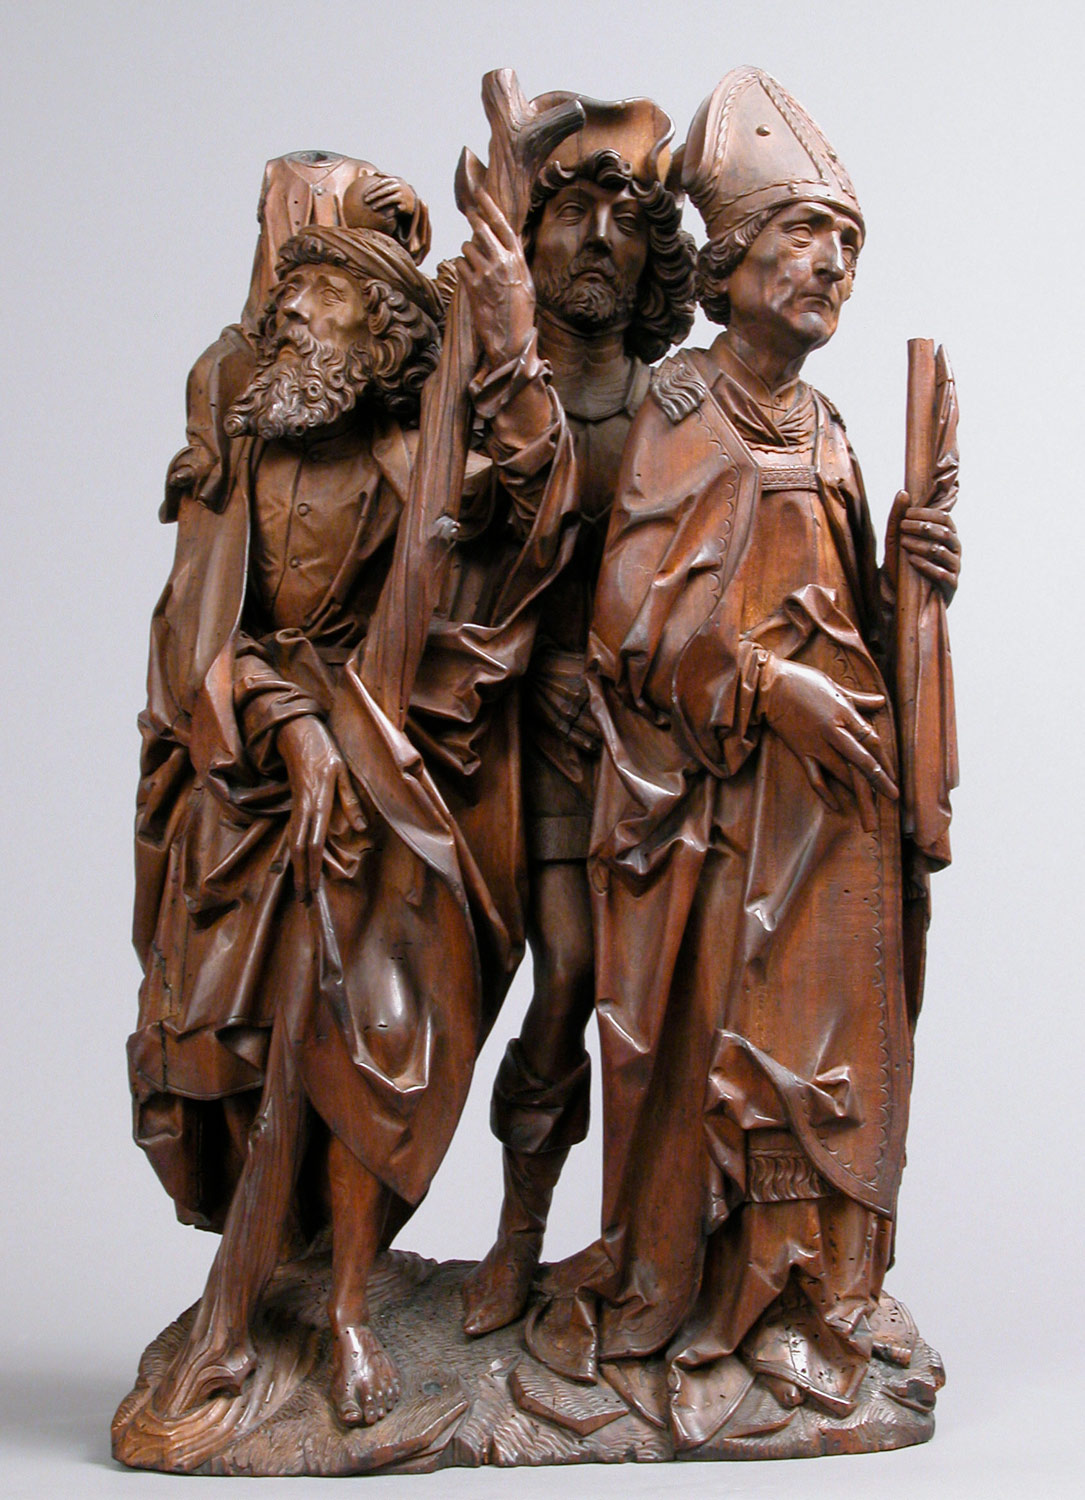 Saints Christopher, Eustace, and Erasmus (Three Helper Saints)